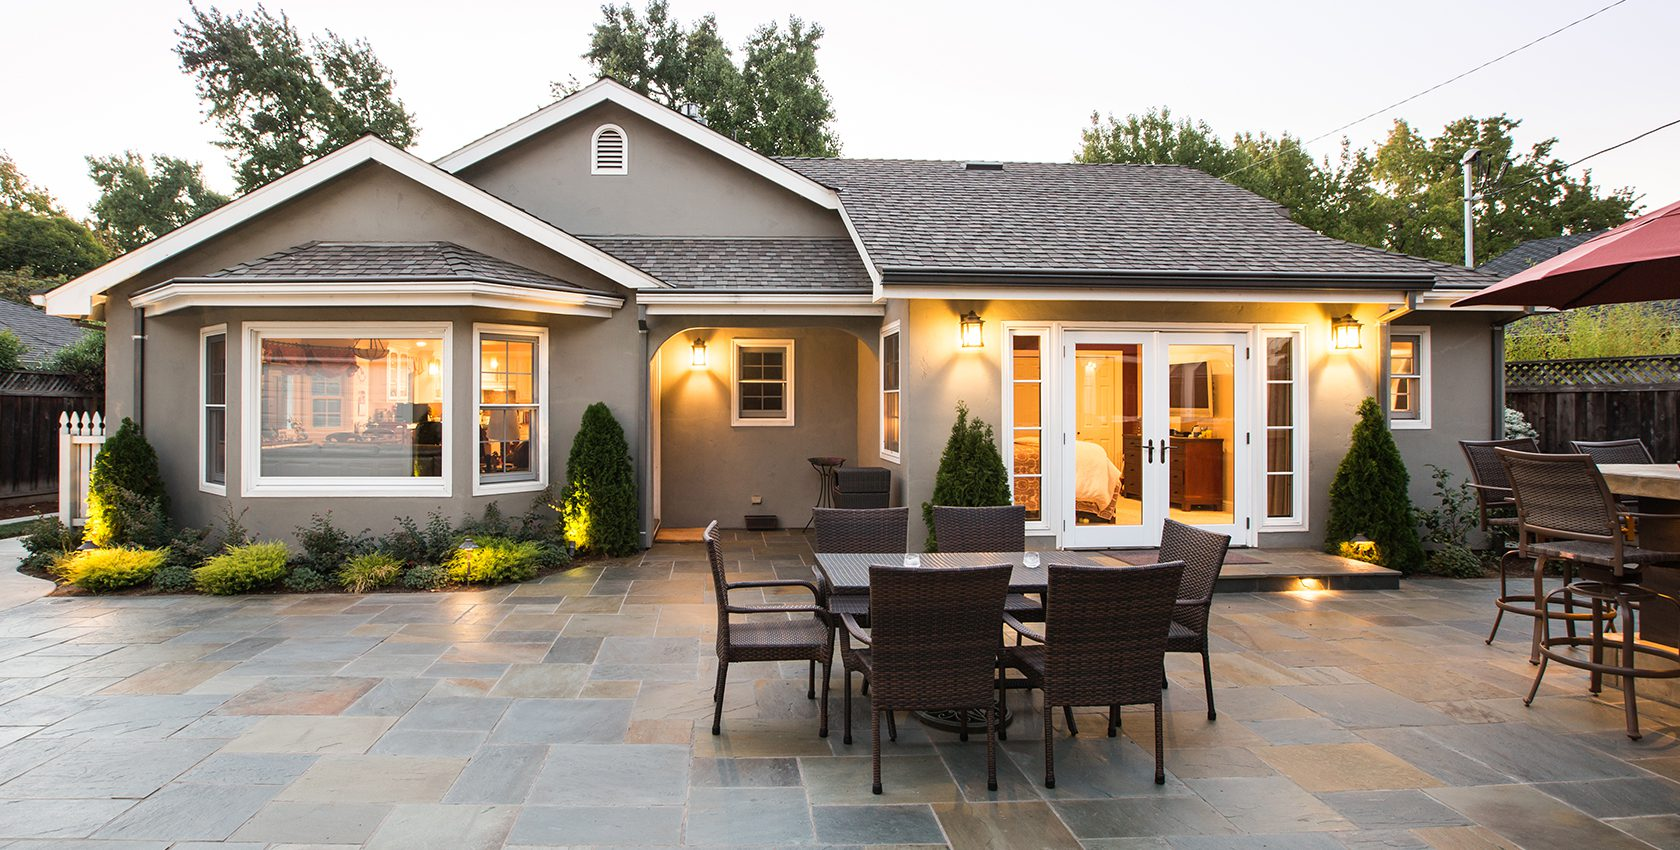 7 Exterior Renovation Ideas That Get Noticed